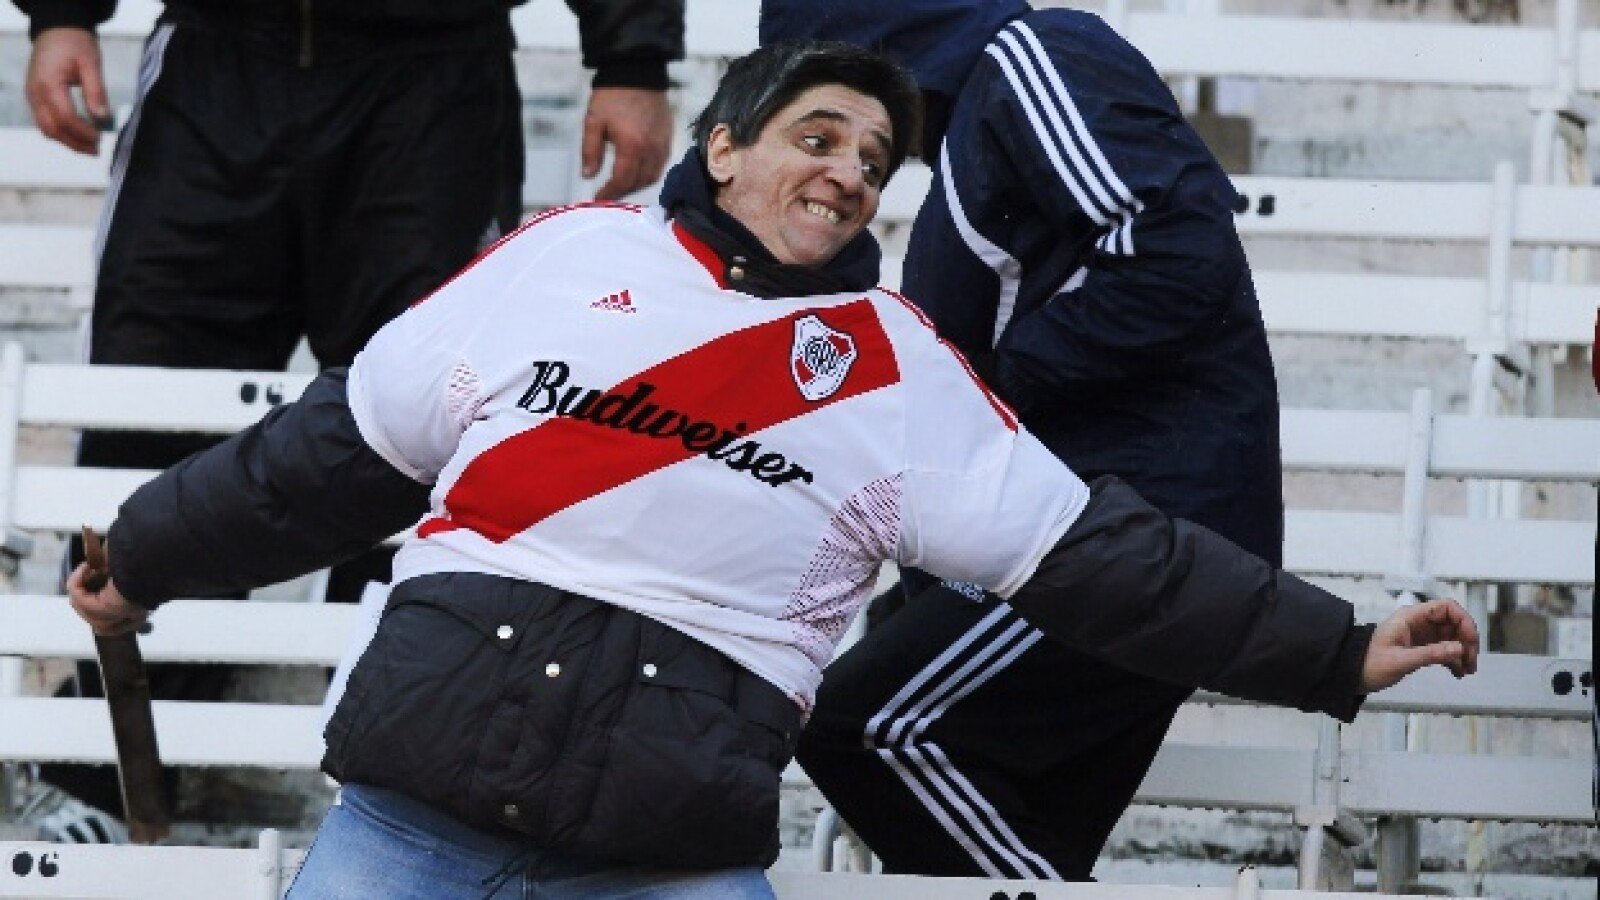 fútbol, river plate, argentina